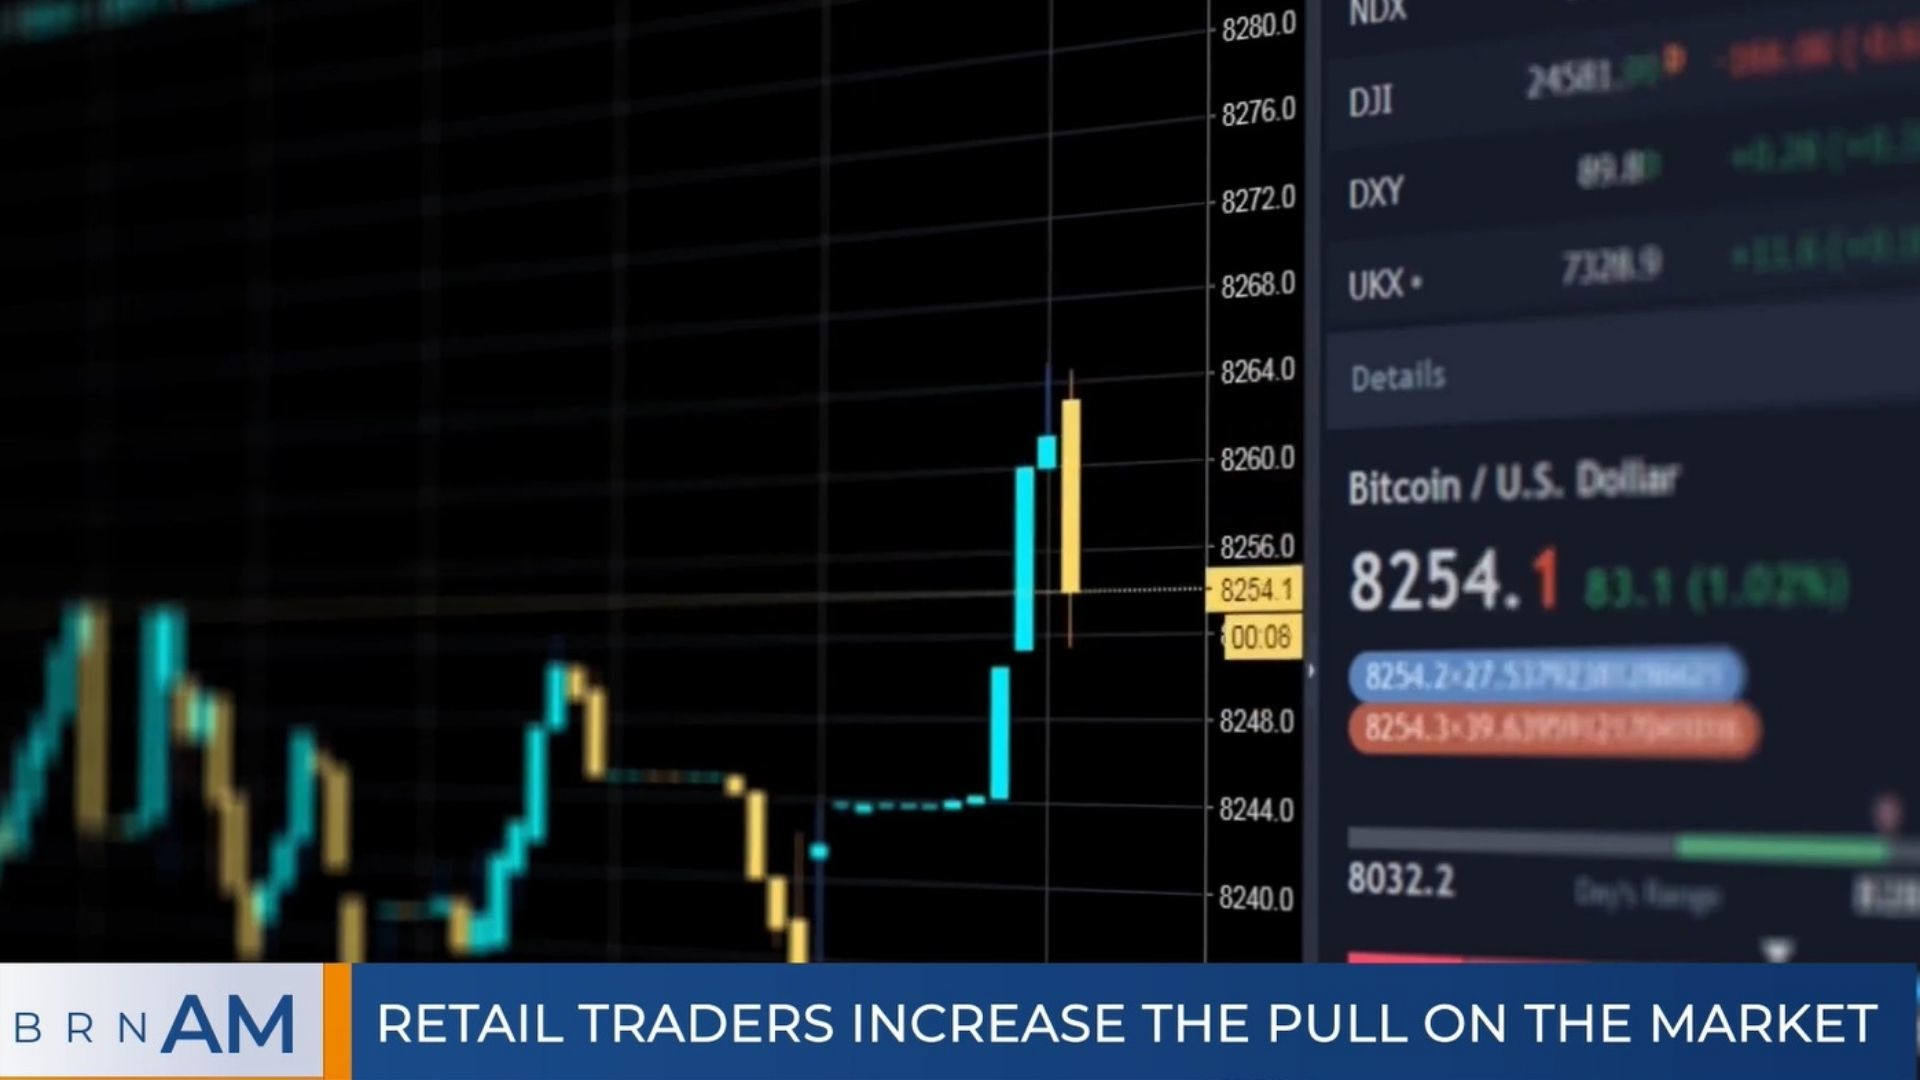 BRN AM   Retail traders increase the pull on the market